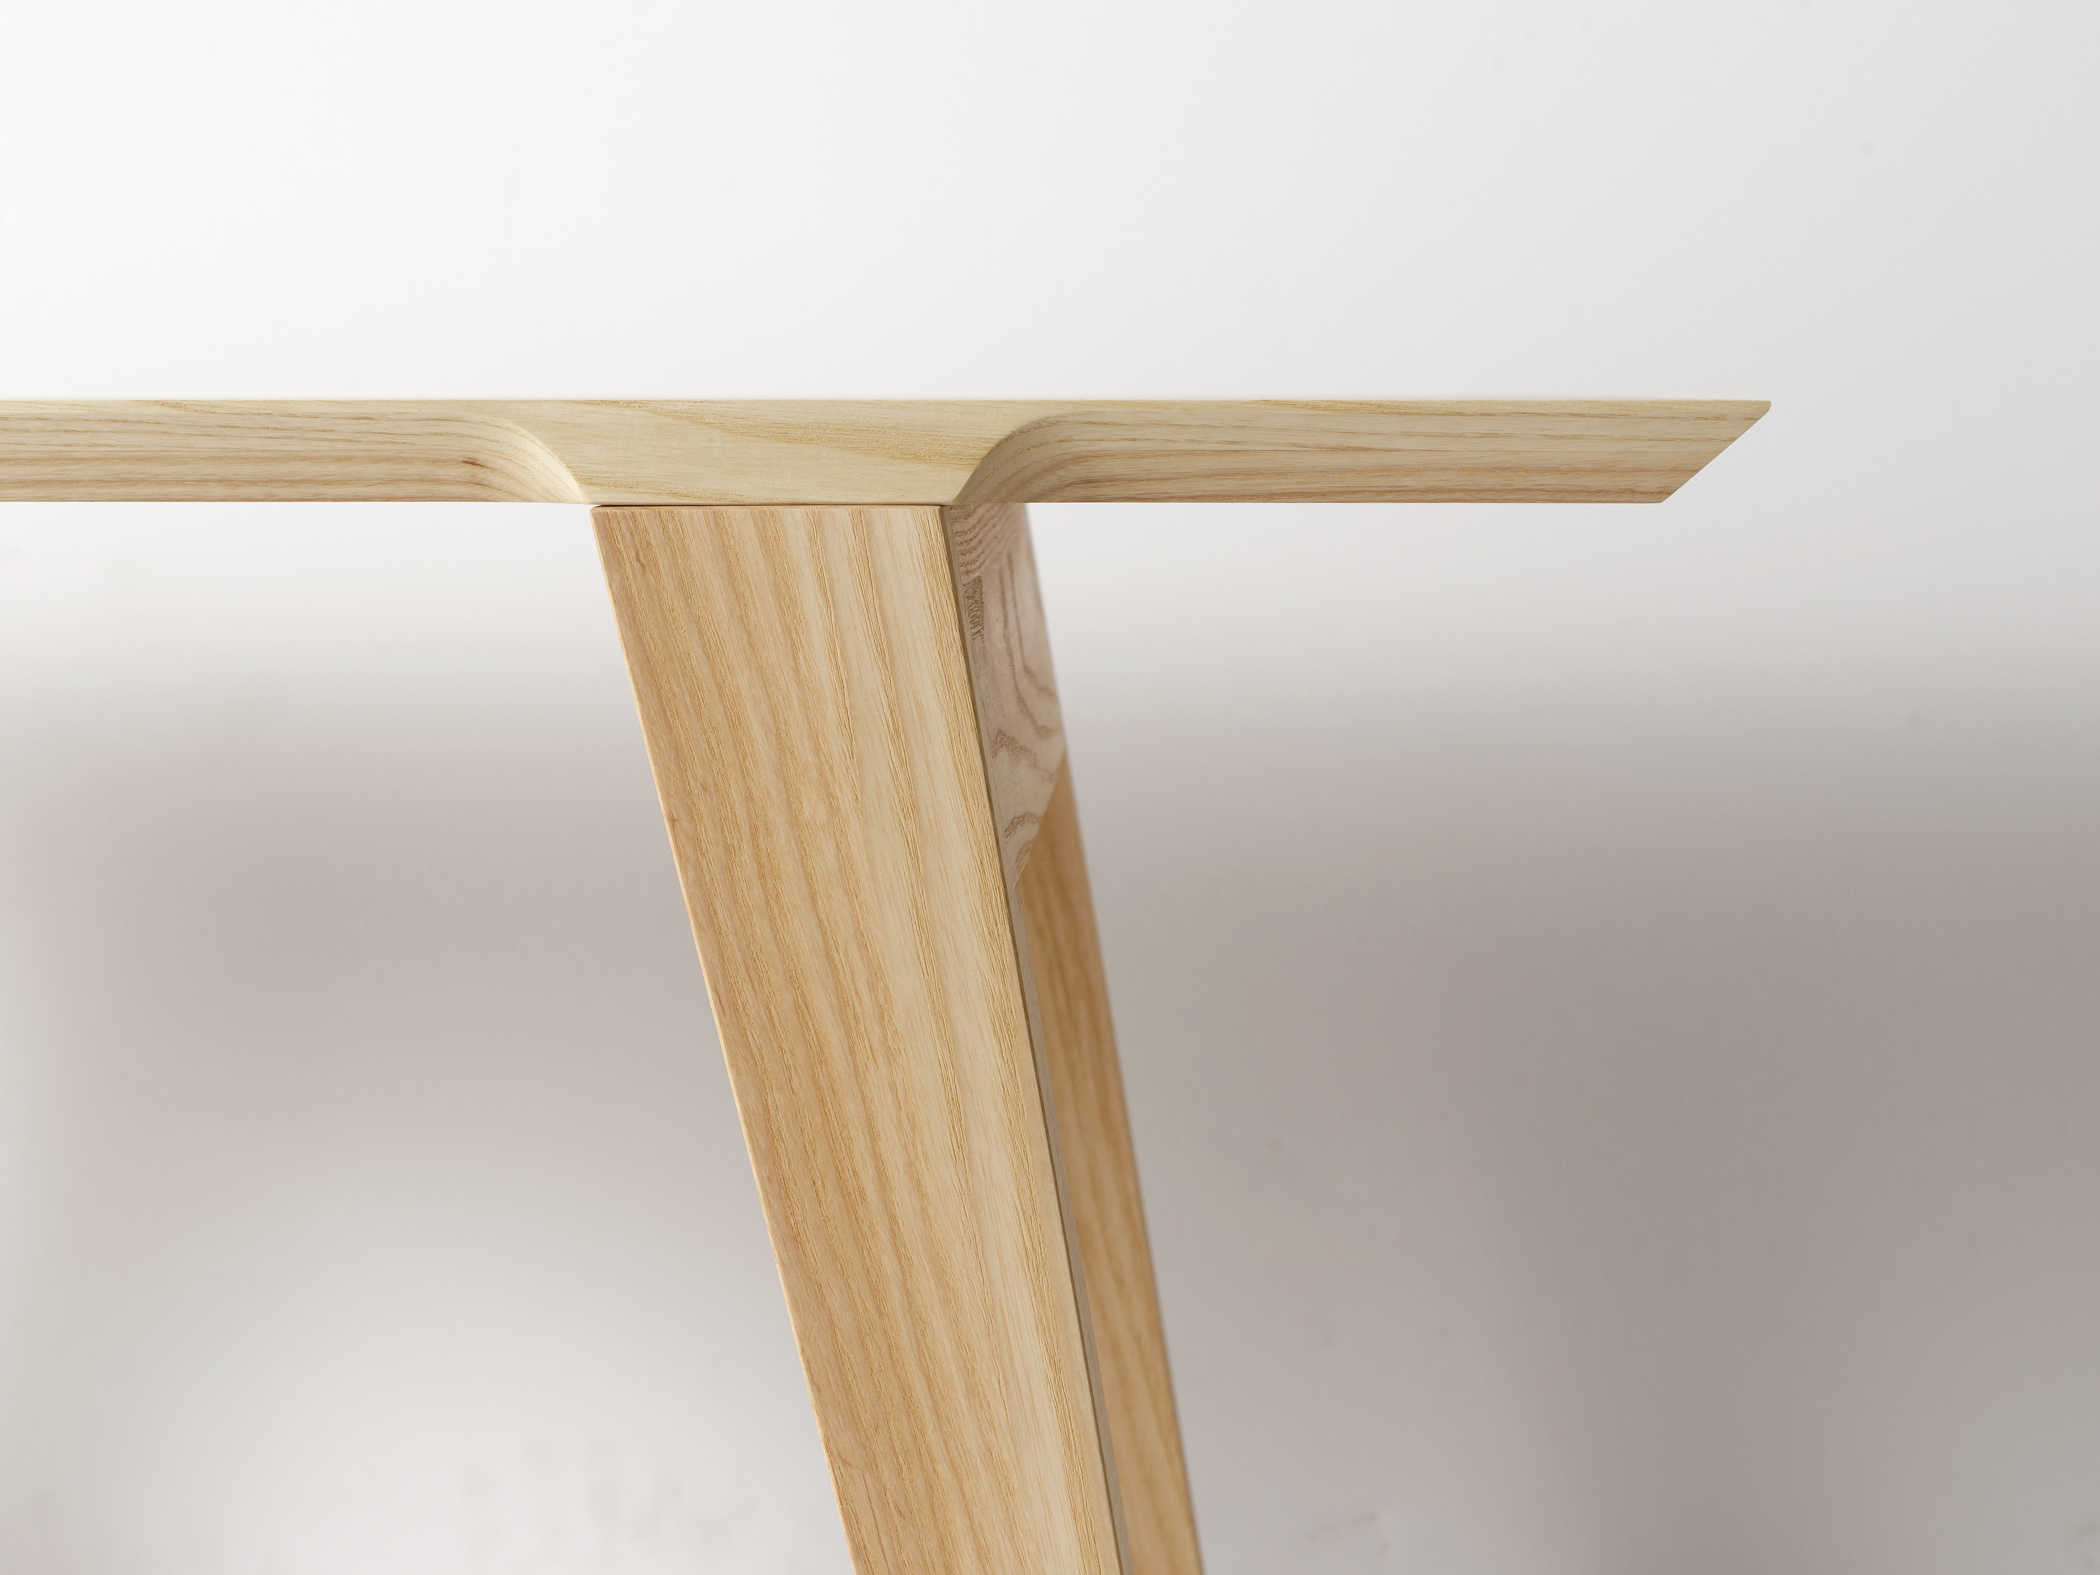 Modern contemporary solid wood bench or coffee table detail